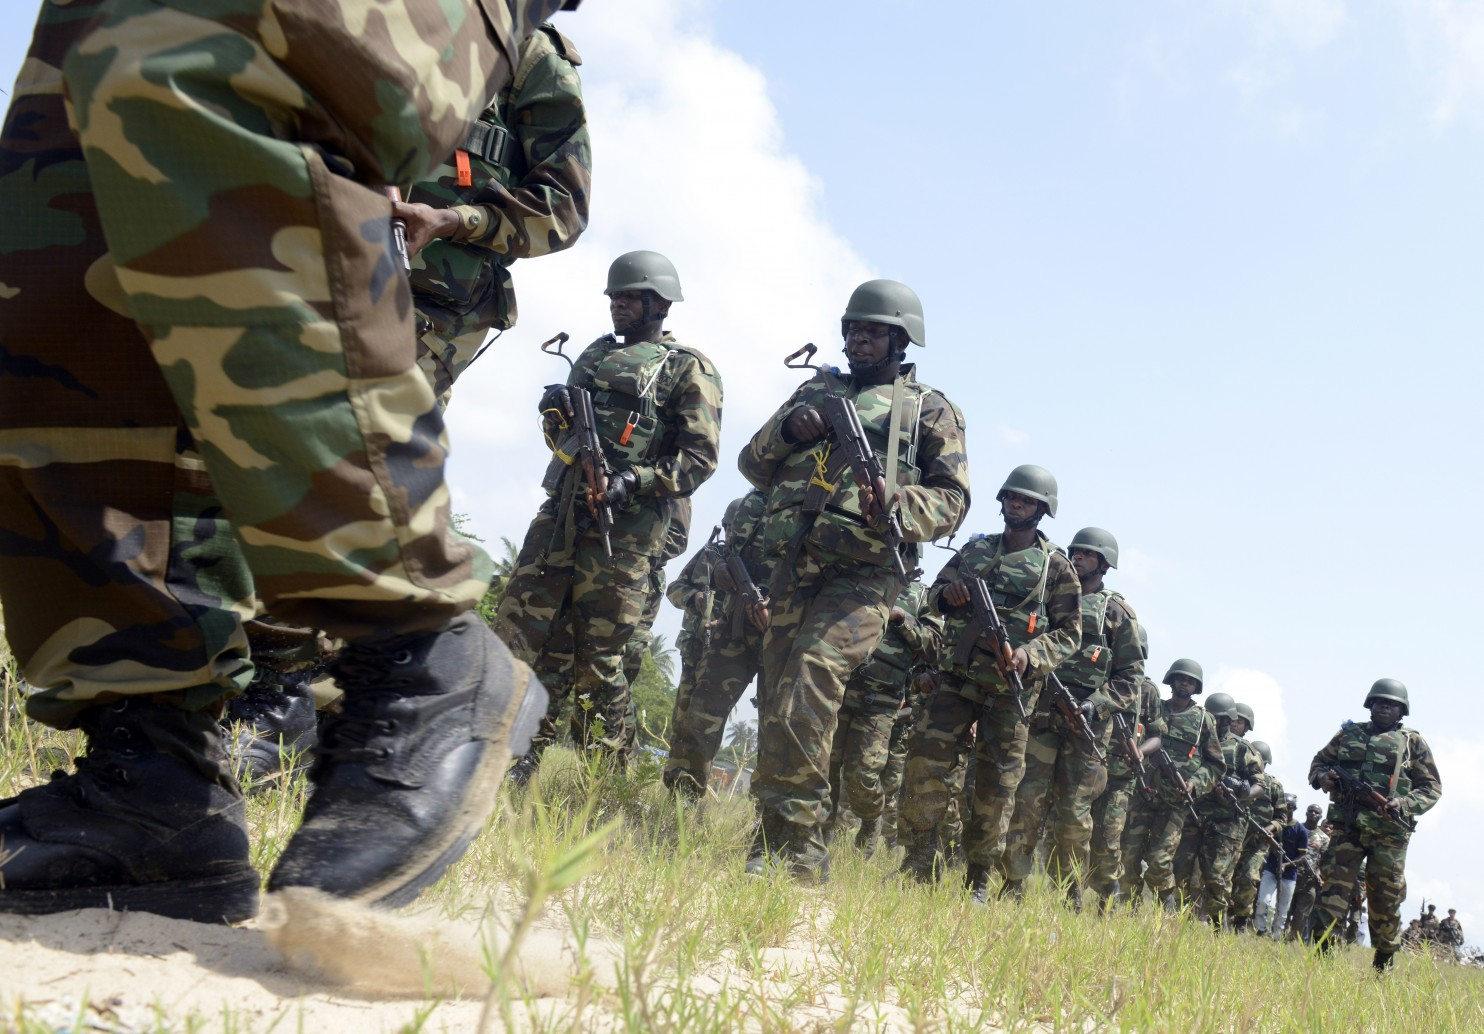 Nigeria distrusts U.S. efforts to help fight terror, while the Americans are frustrated by Nigerian military abuses. (Pius Utomi Ekpei/AFP/Getty Images)